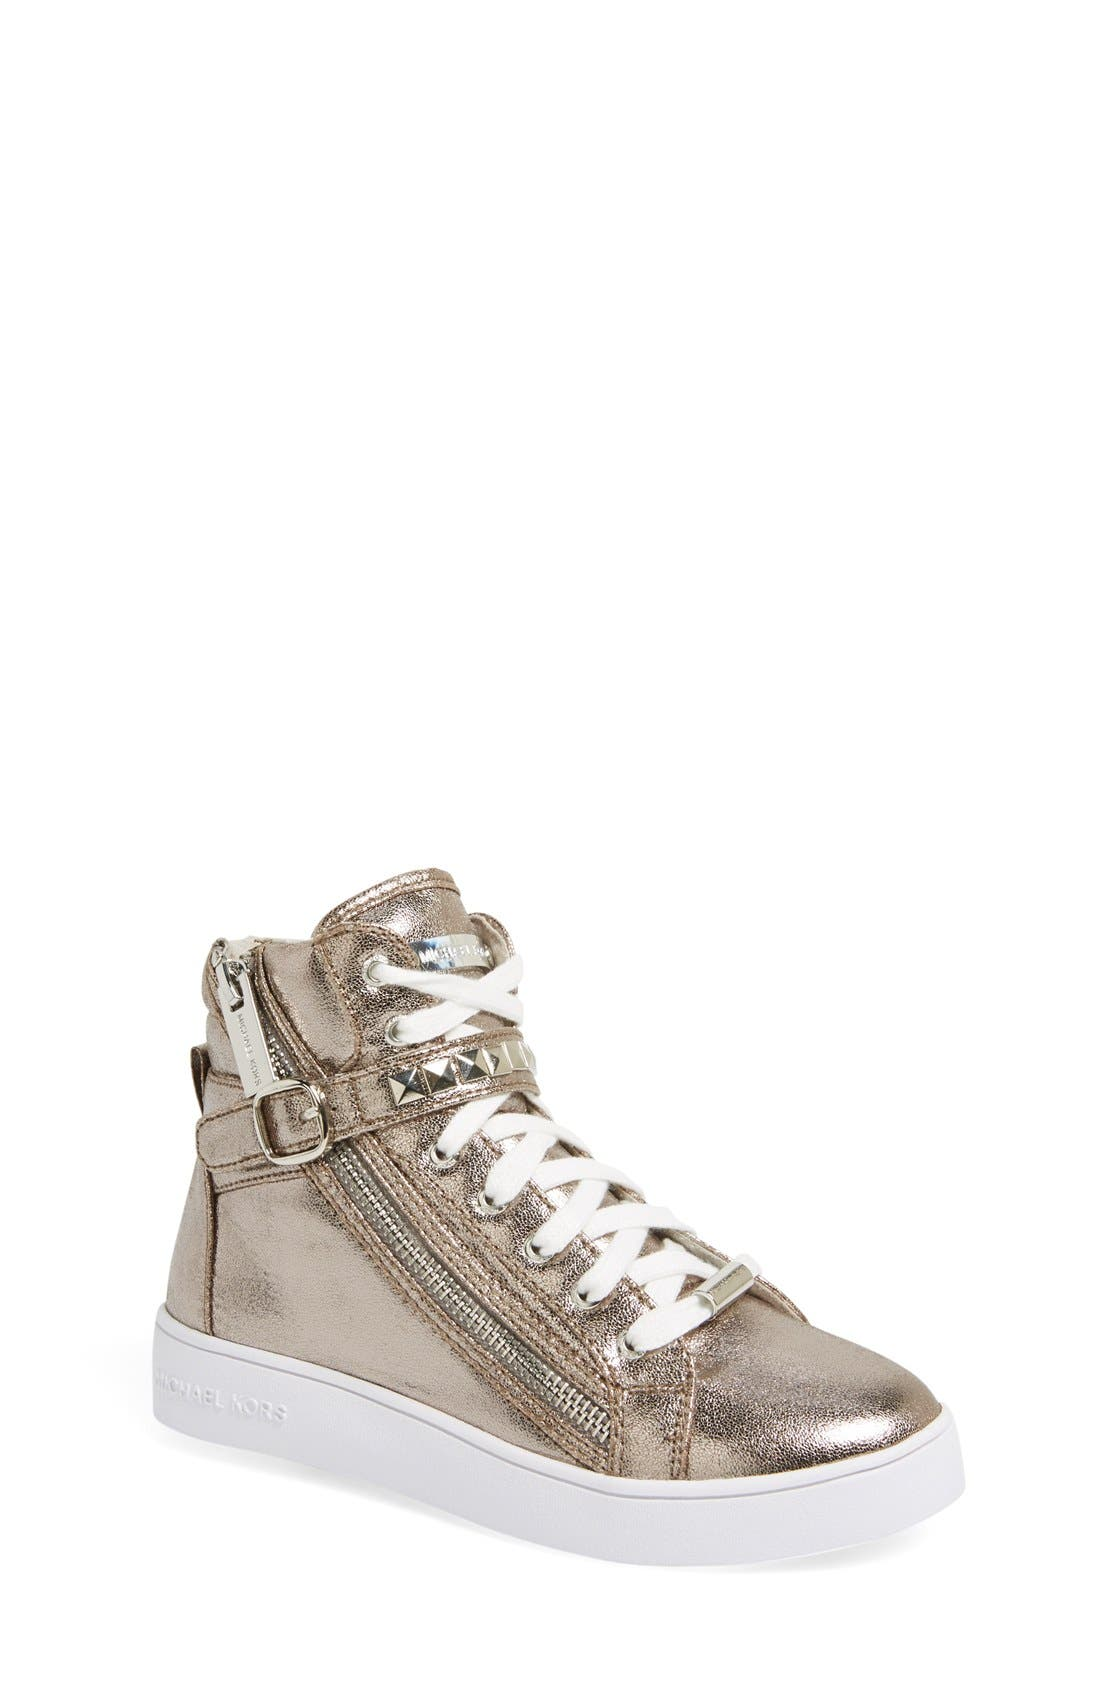 'Ivy Rory' High Top Sneaker,                             Main thumbnail 3, color,